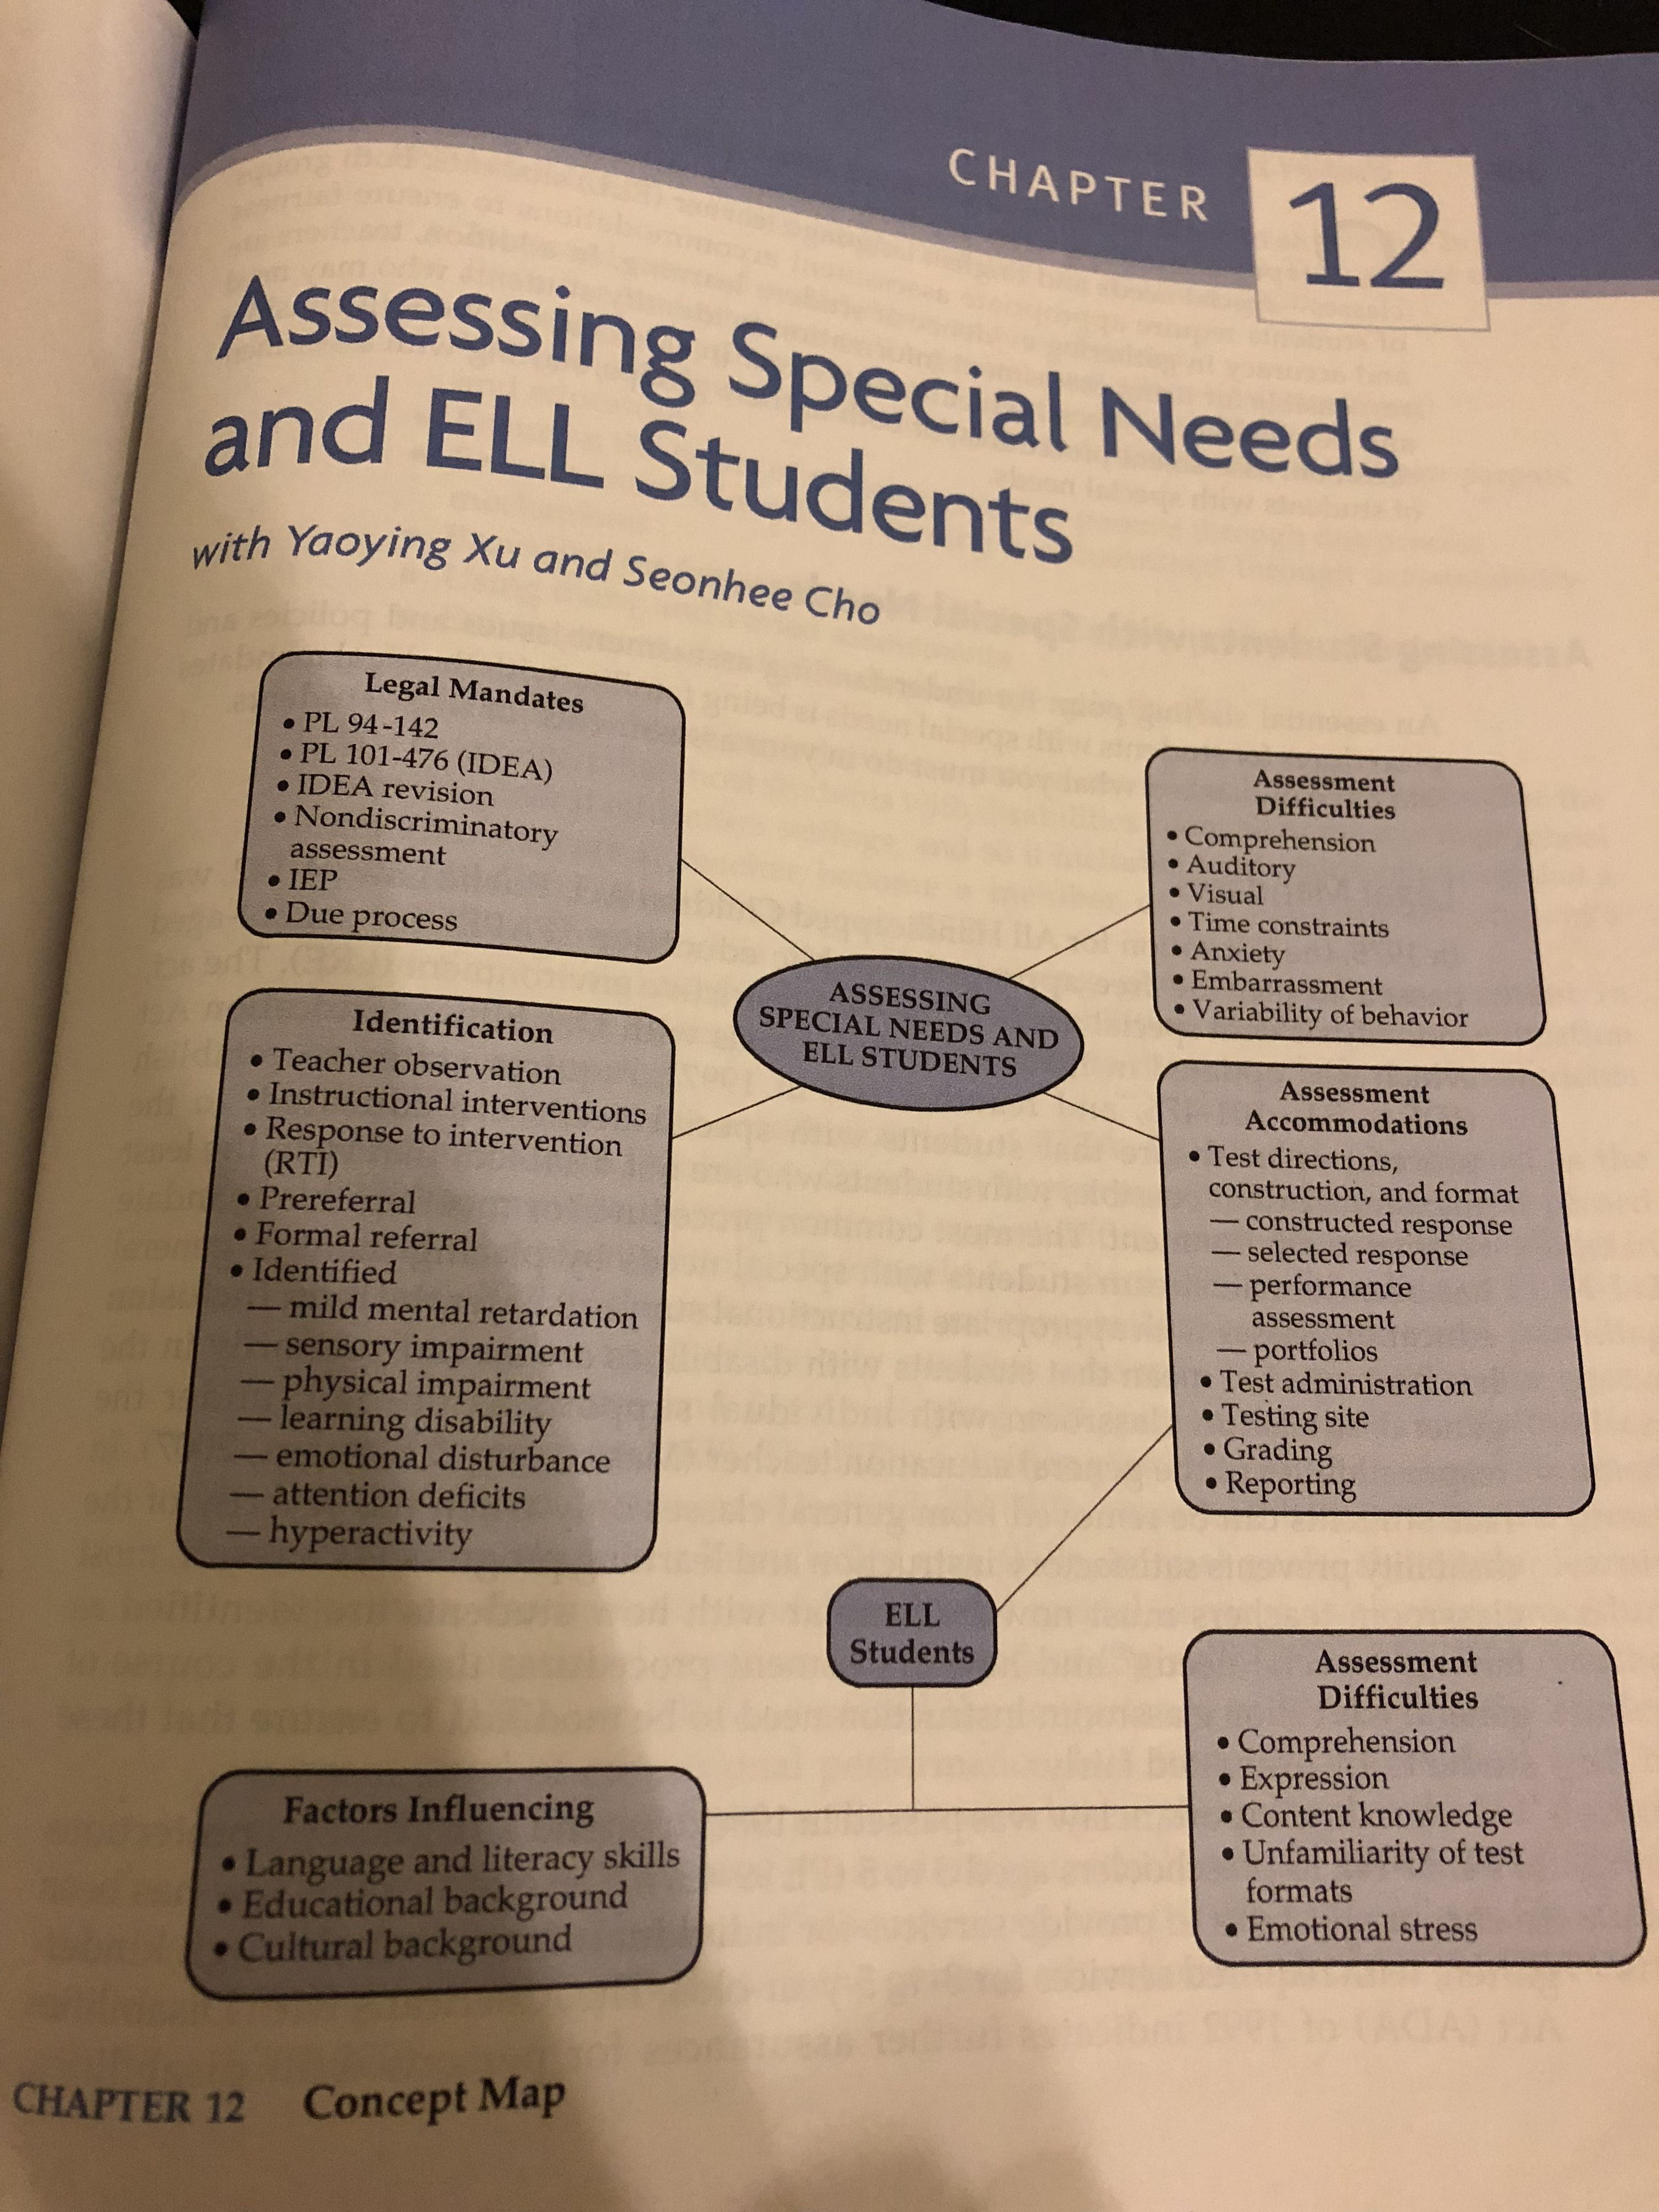 Stressed Out Students How Boarding >> Pin By Megan Blevins On Assessment Accommodation For Students